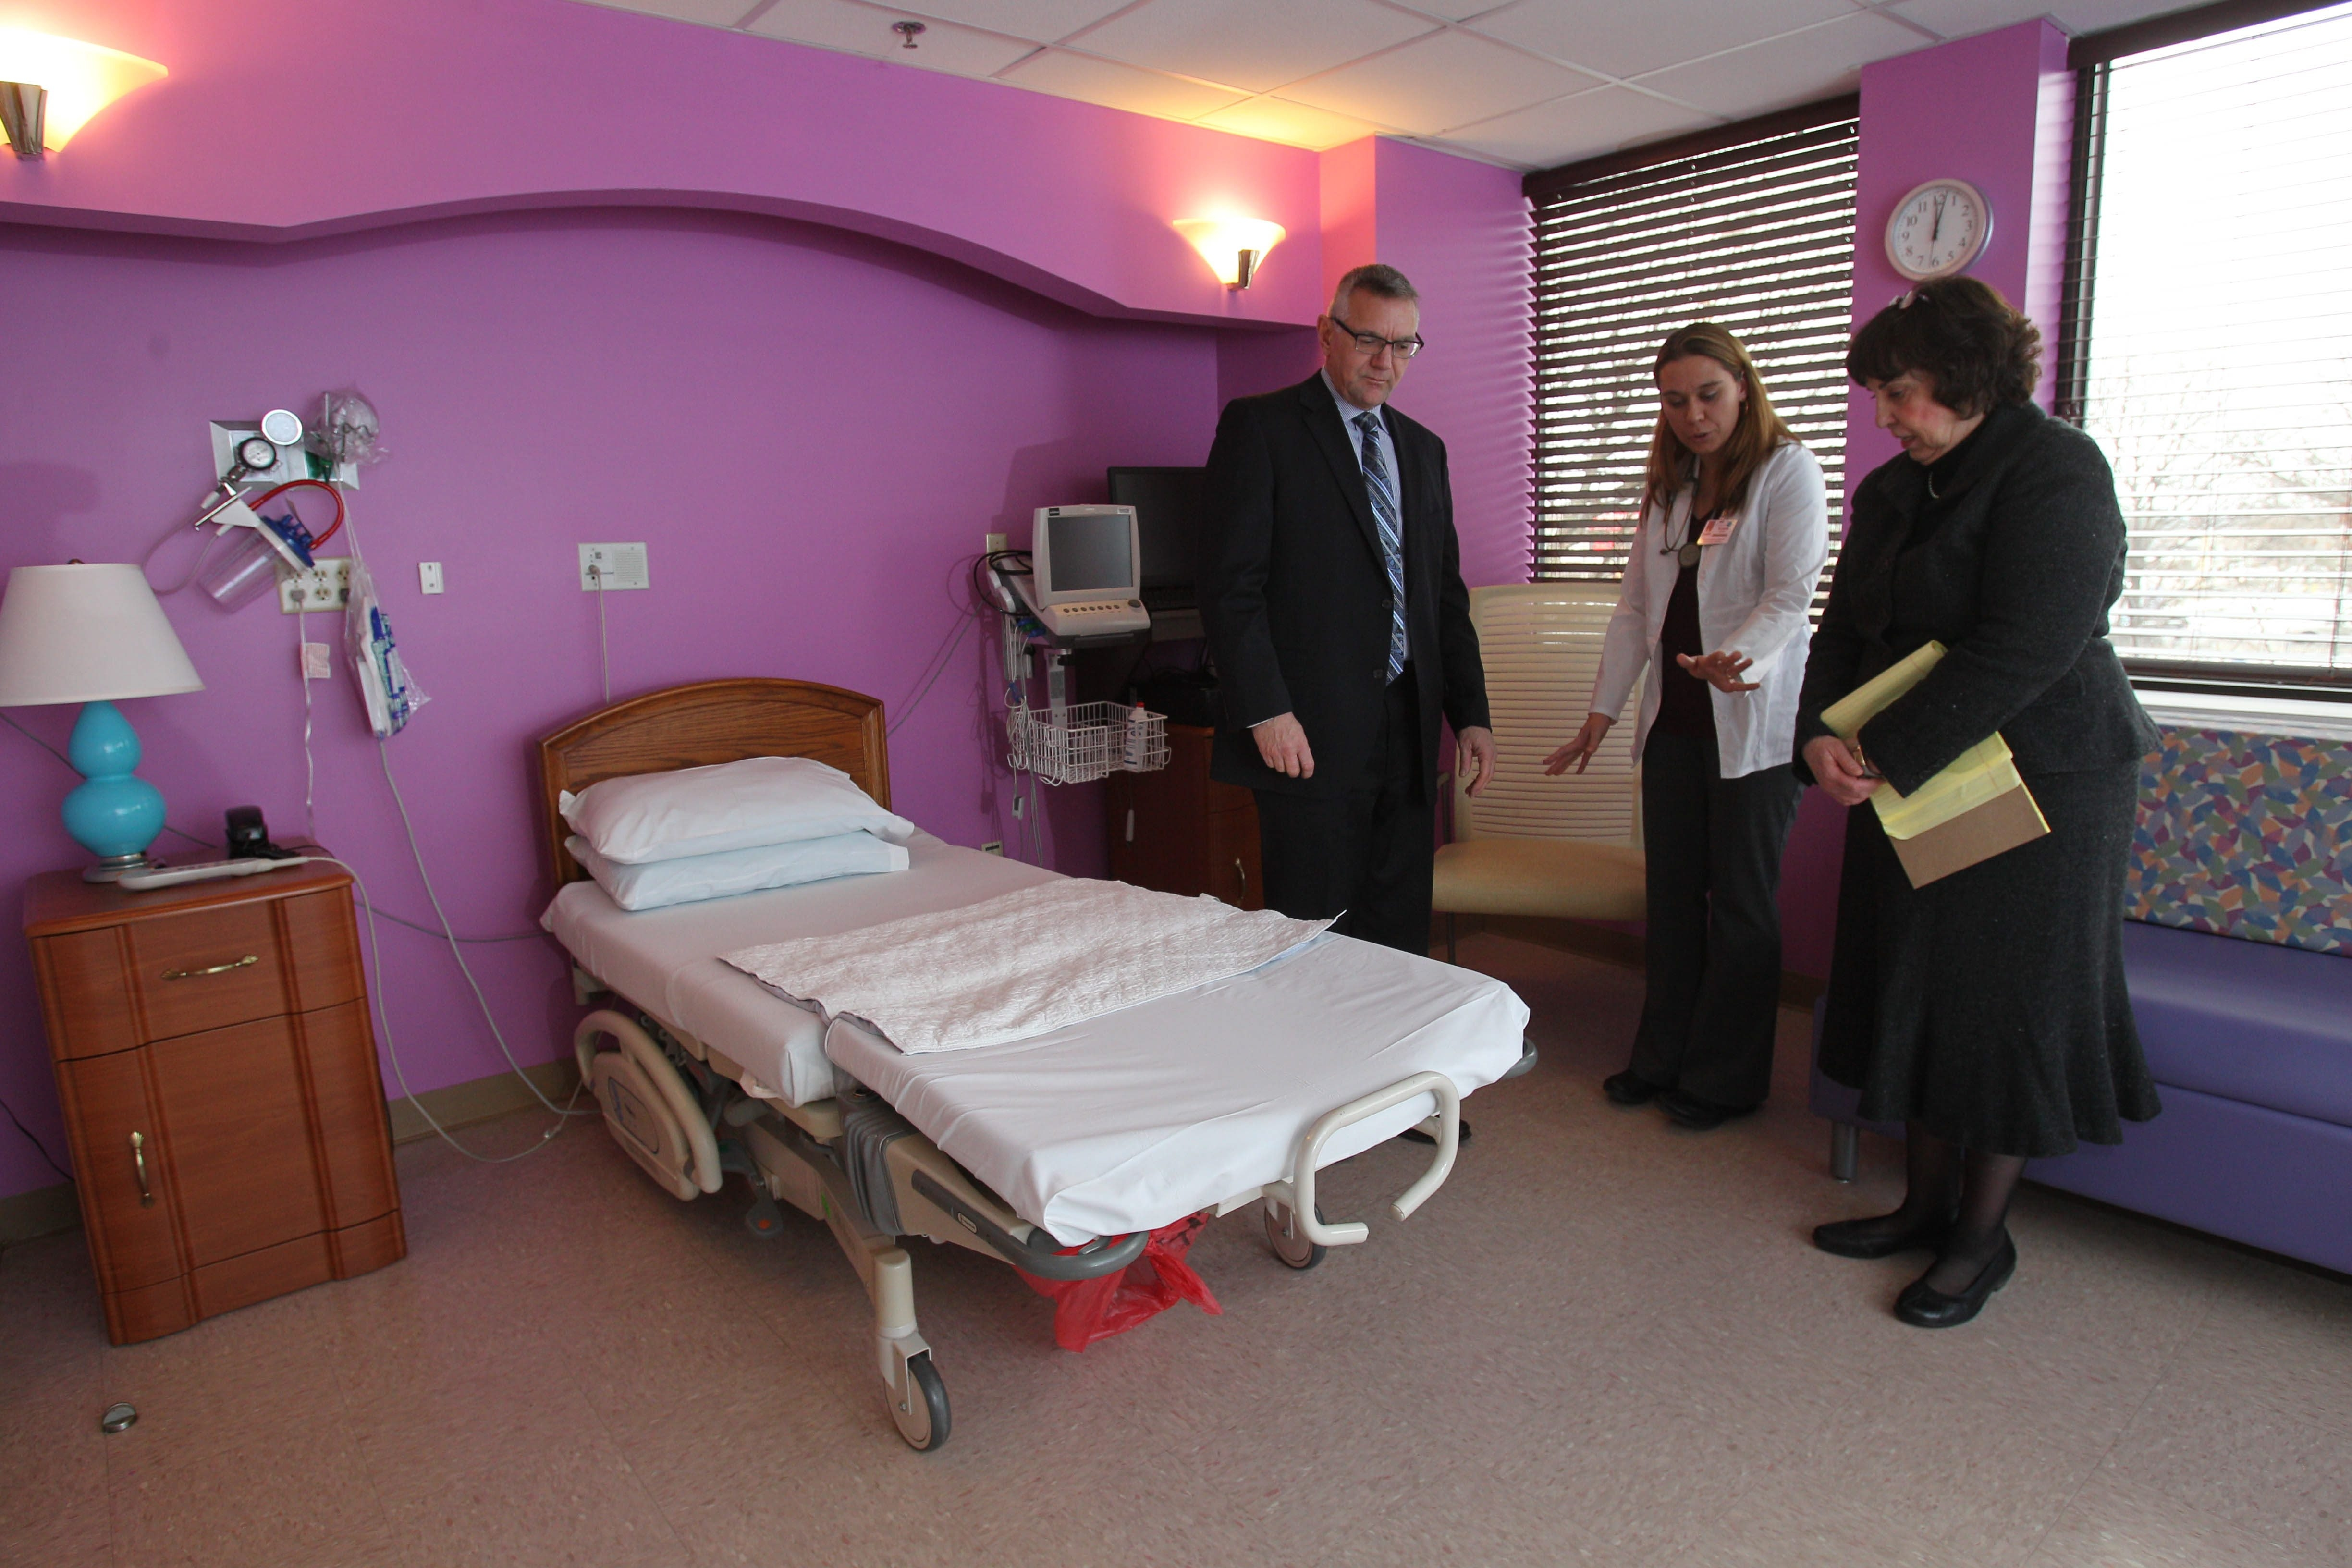 Niagara Falls Memorial Medical Center has undergone renovations and upgrades, led by President and CEO Joseph Ruffolo; Director of Women's Services Susan Martin; and Vice President and COO Sheila Kee.